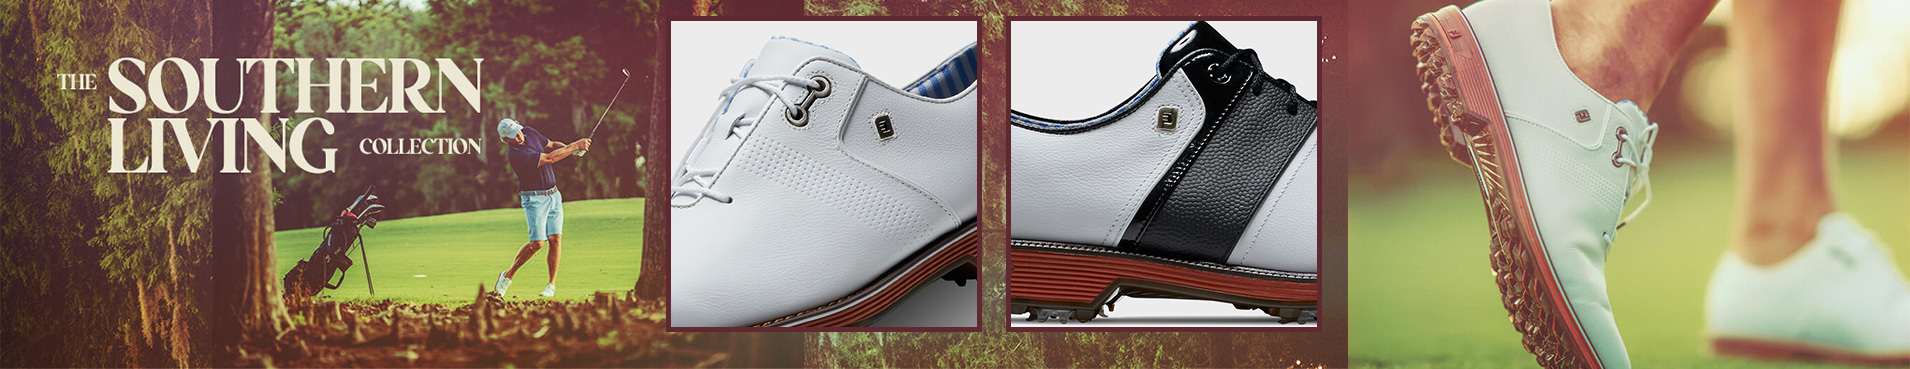 Footjoy Southern Living Collection